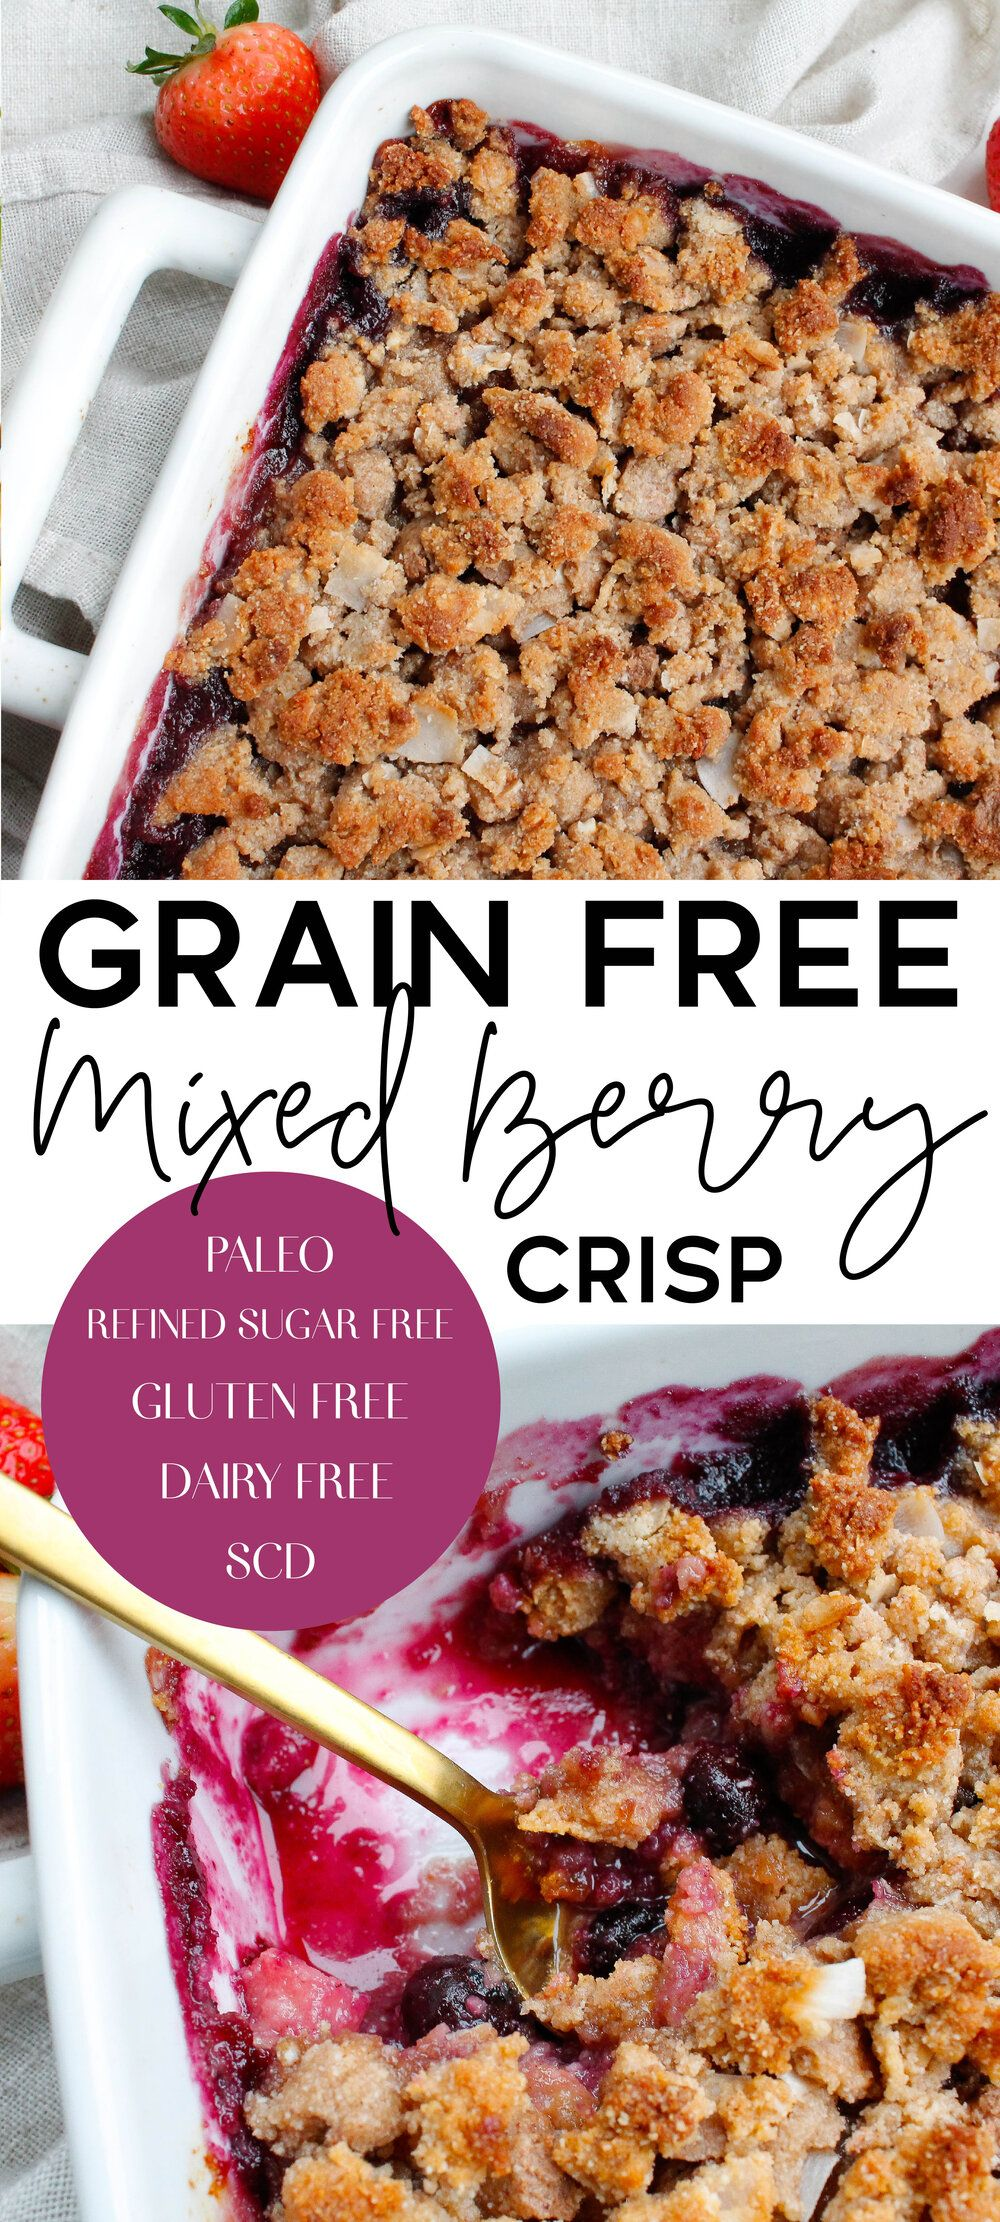 Paleo Mixed Berry Crisp    This paleo mixed berry crisp is perfect for a healthy spring and summer dessert. This paleo crisp is grain free, gluten free, dairy free, refined sugar free AND Specific Carbohydrate Diet friendly. The perfect healthy sweet treat!    plentyandwell.com    #specificcarbohydratediet #scddiet #paleocrisp